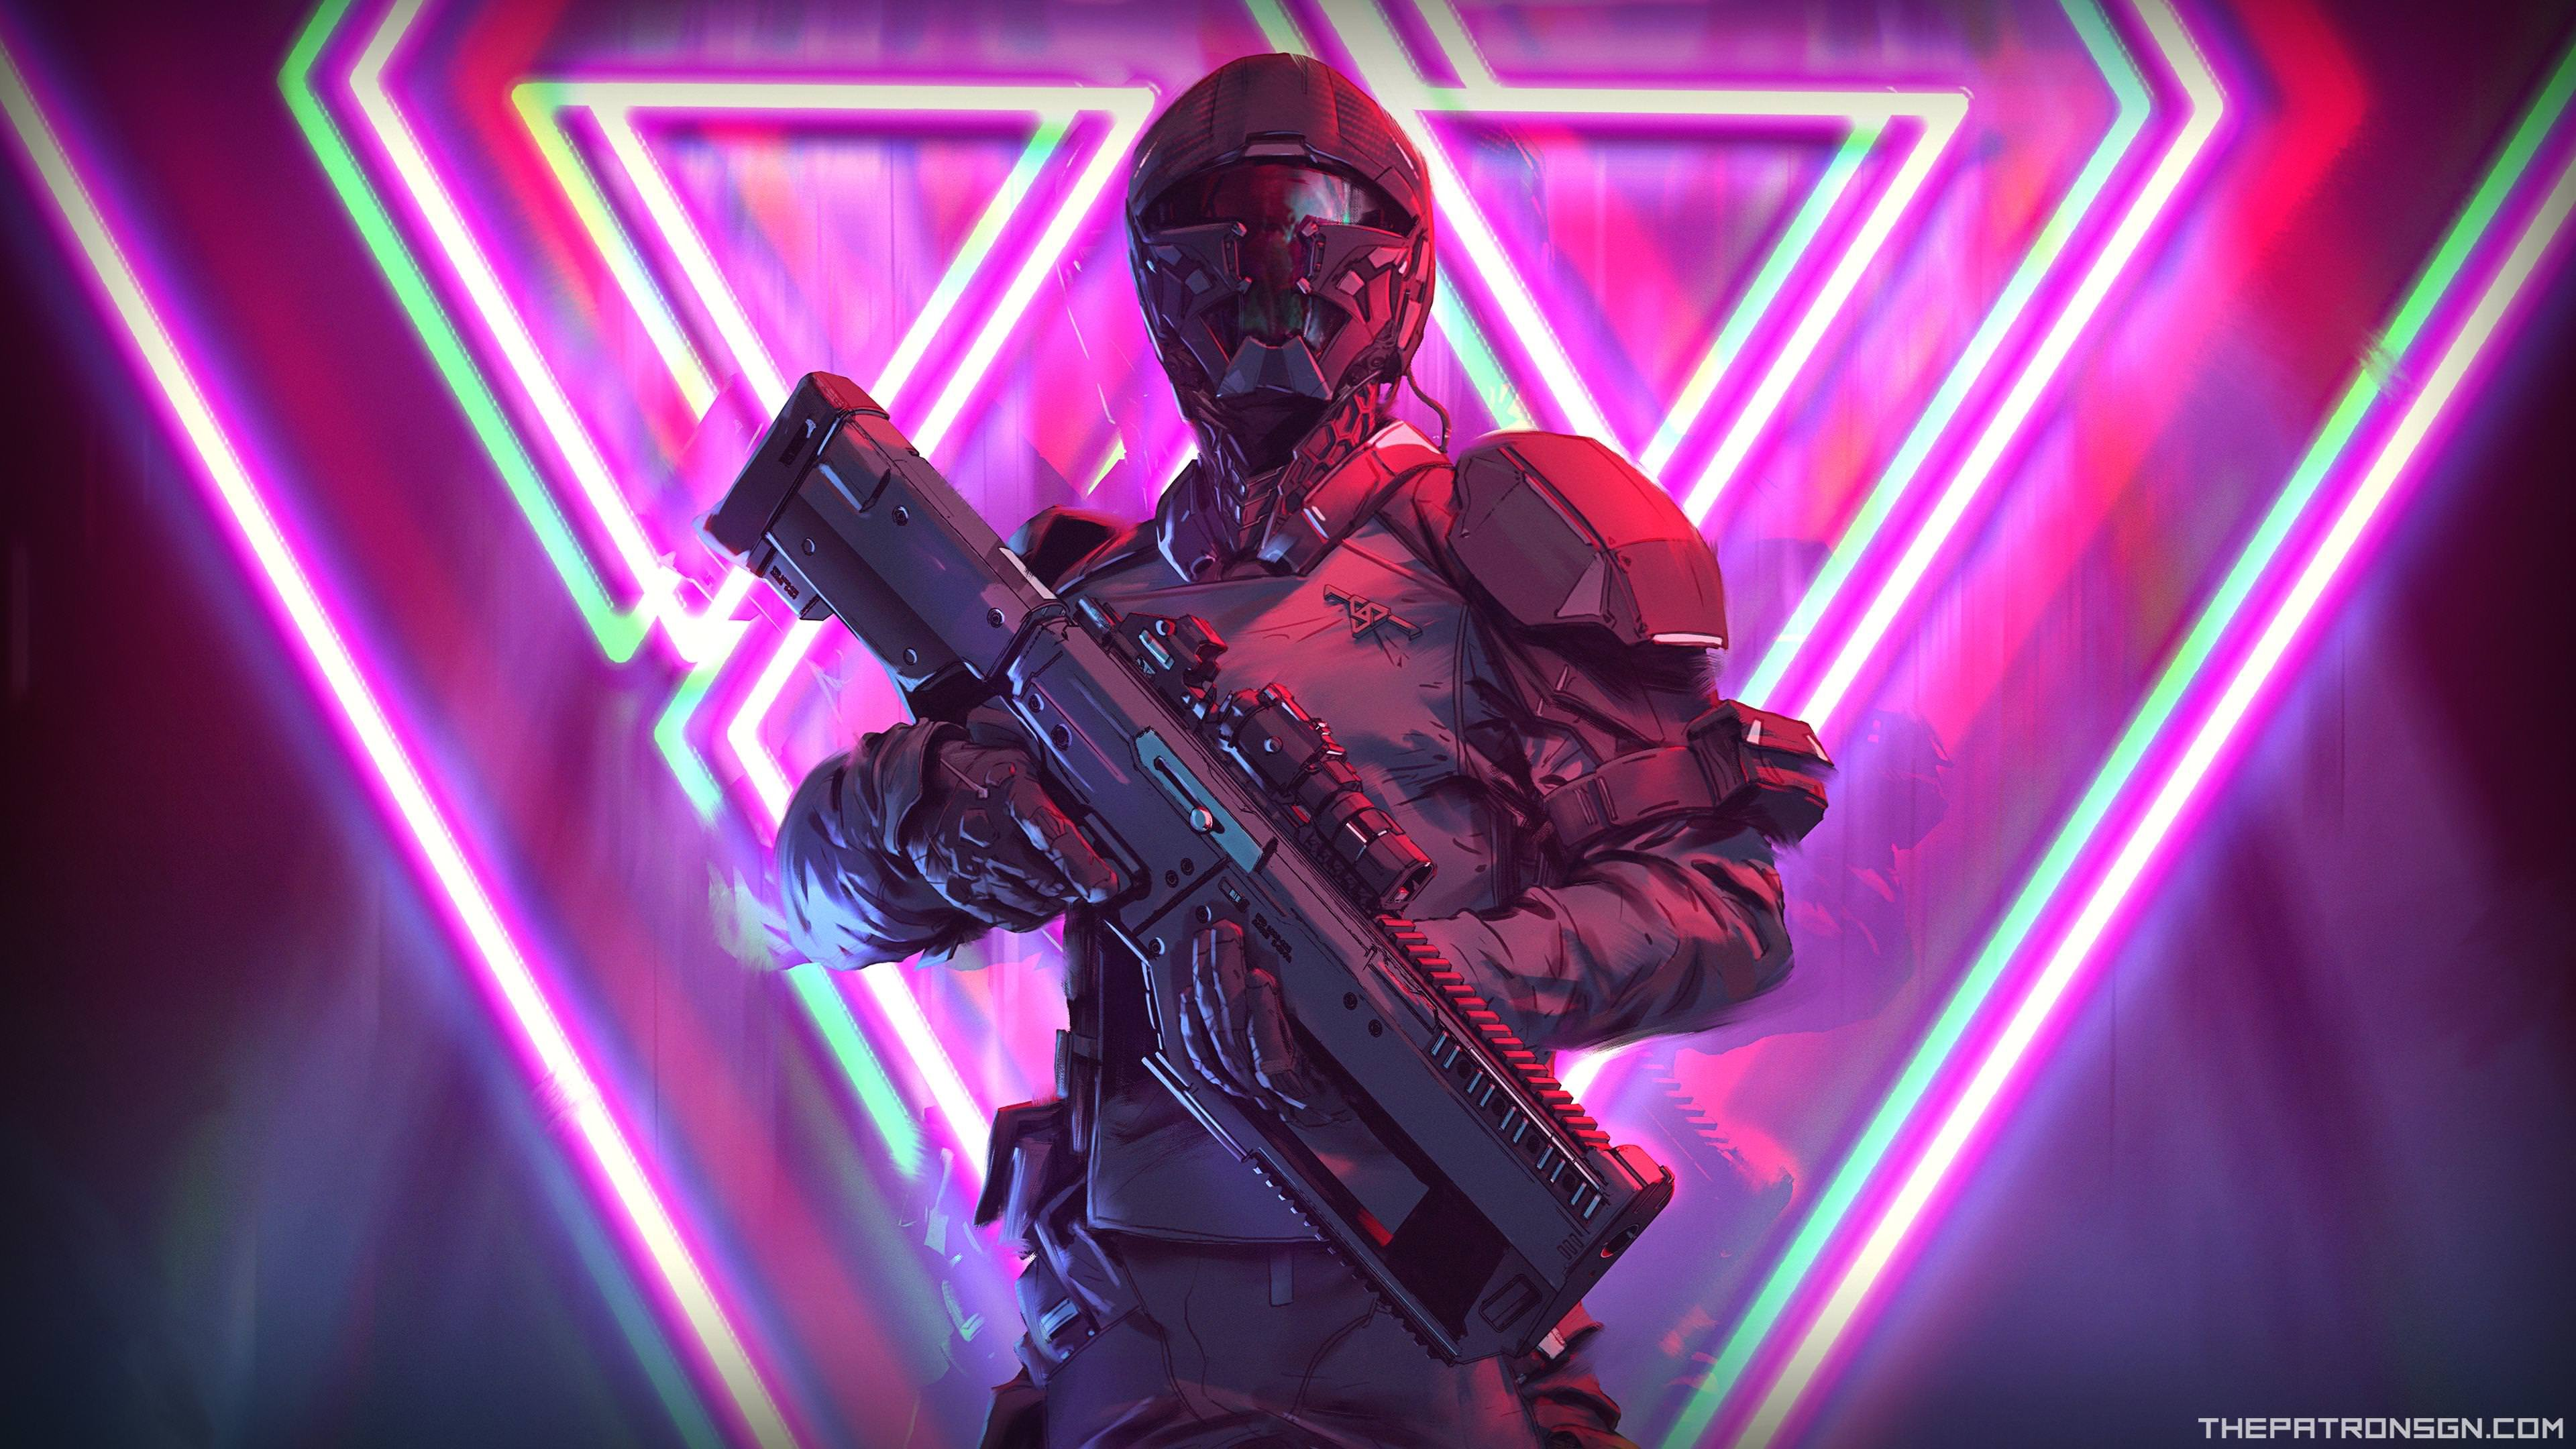 cool wallpapers,purple,light,performance,fictional character,magenta